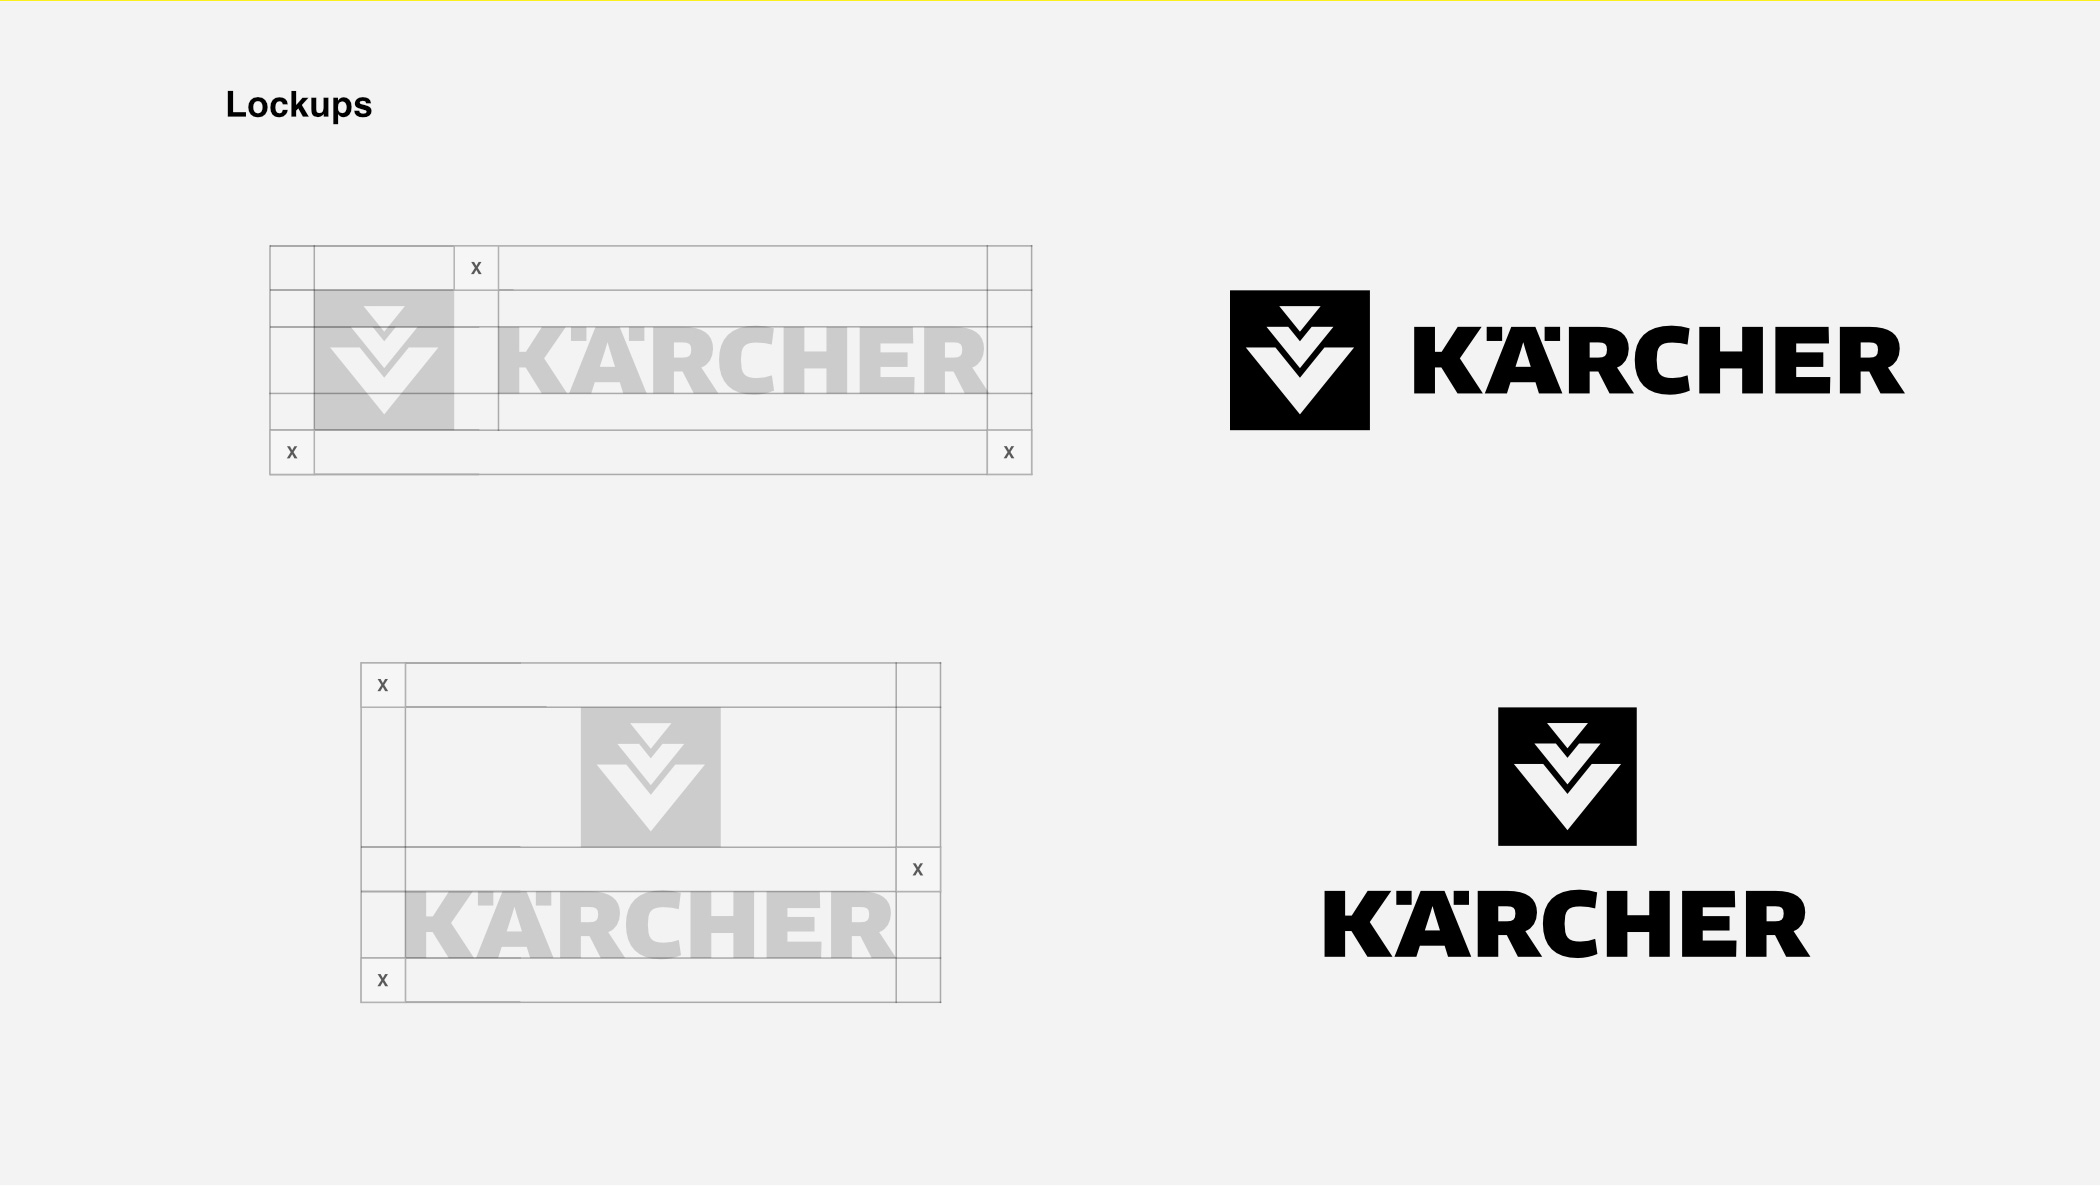 Kärcher - redesign concept: Lockups